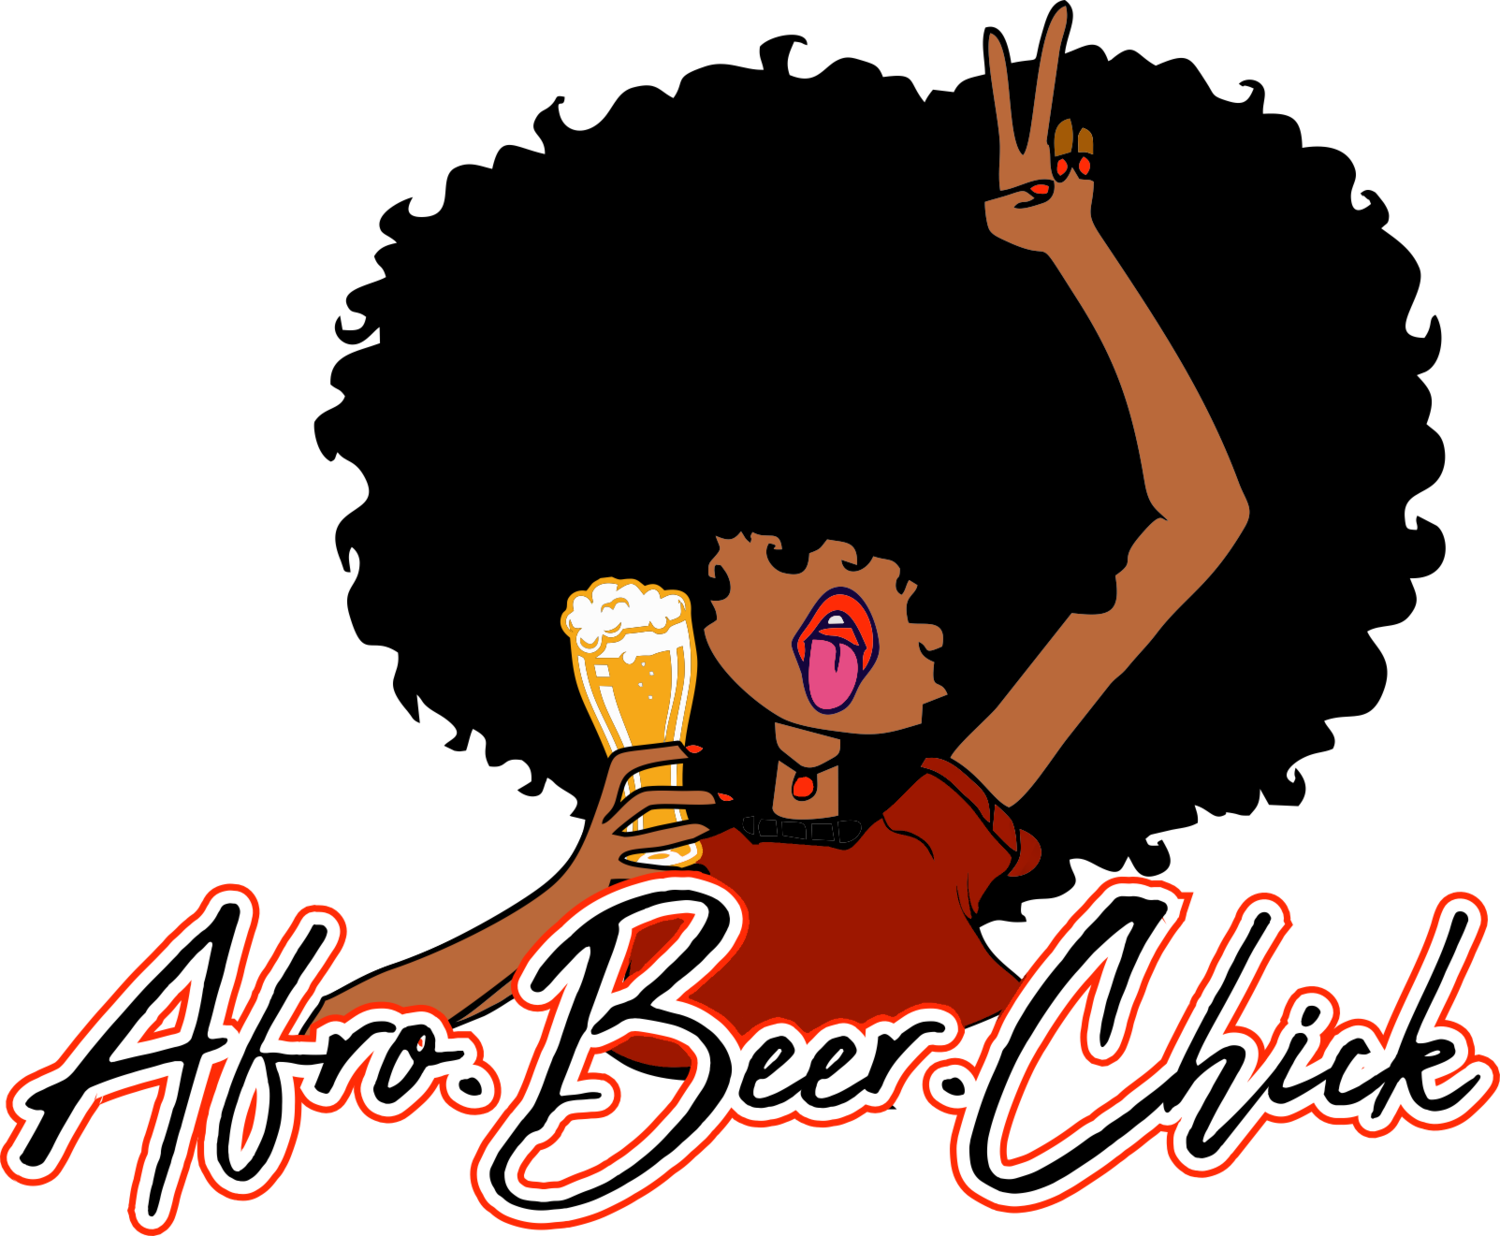 Afro.Beer.Chick